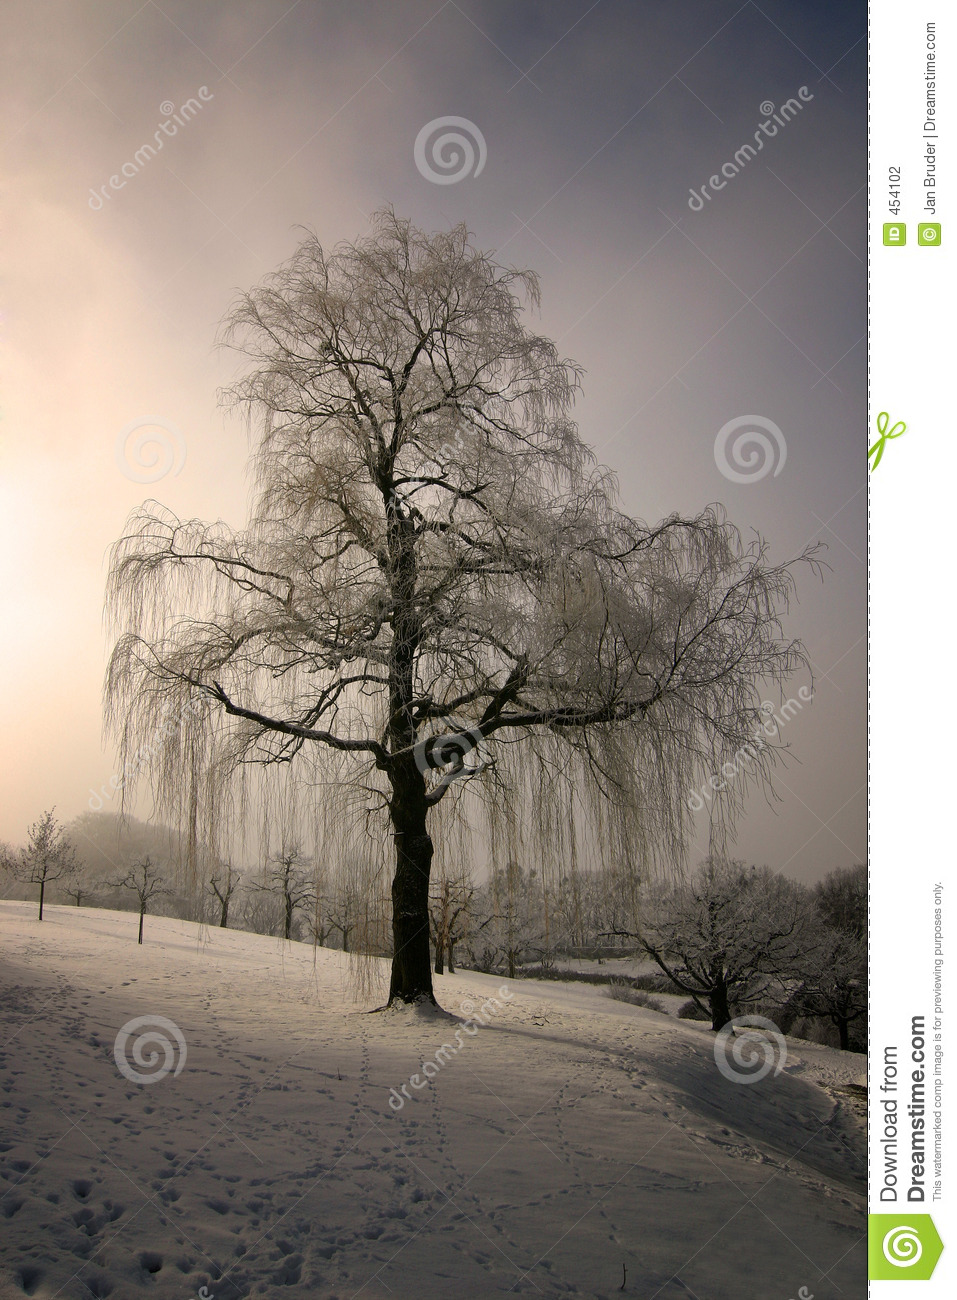 Download Weeping Willow 1 stock photo. Image of melancholic, unhappy - 454102